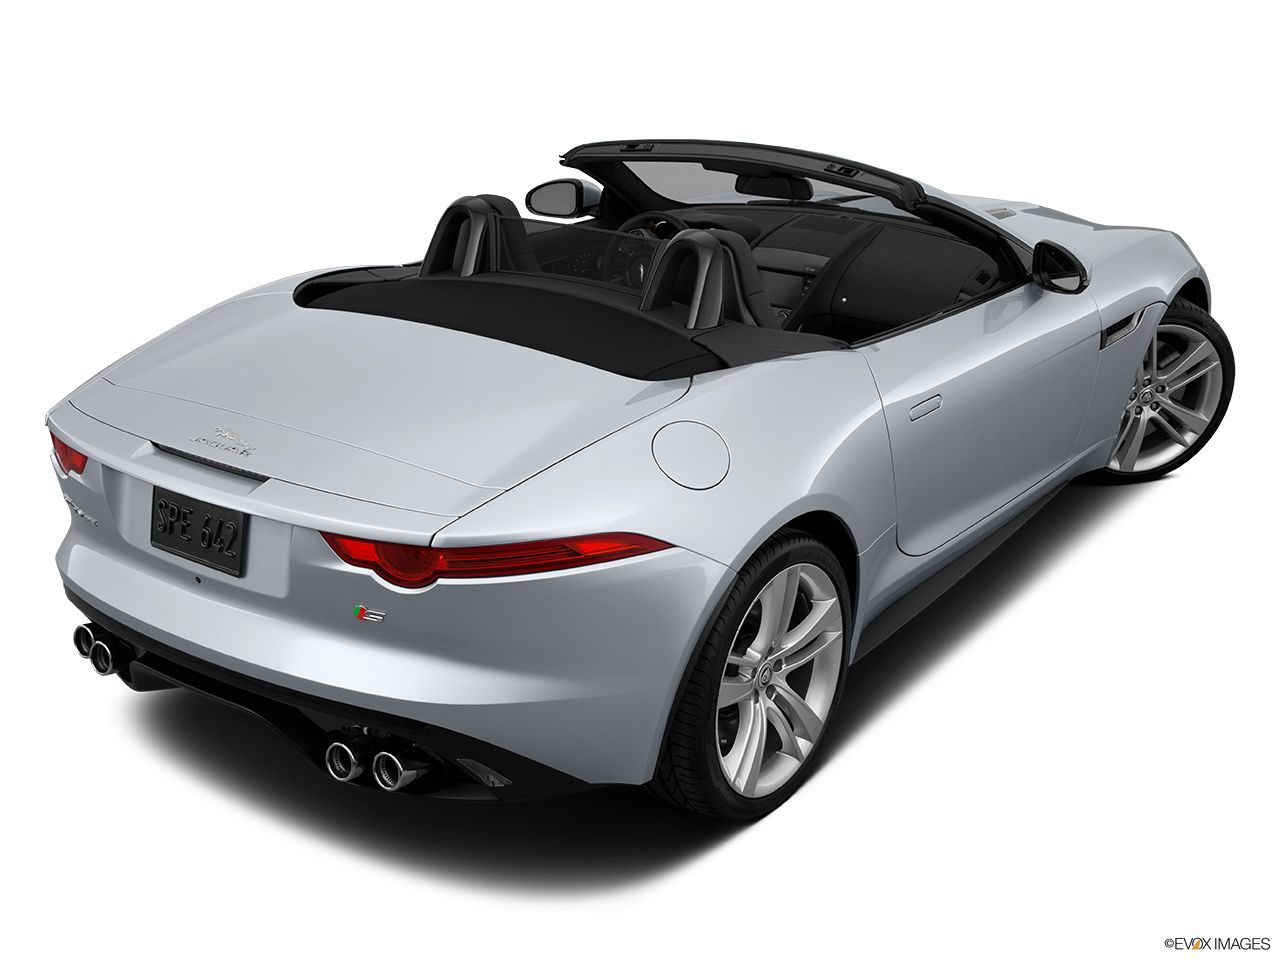 2014 Jaguar F-TYPE Convertible V8 S - Front angle view